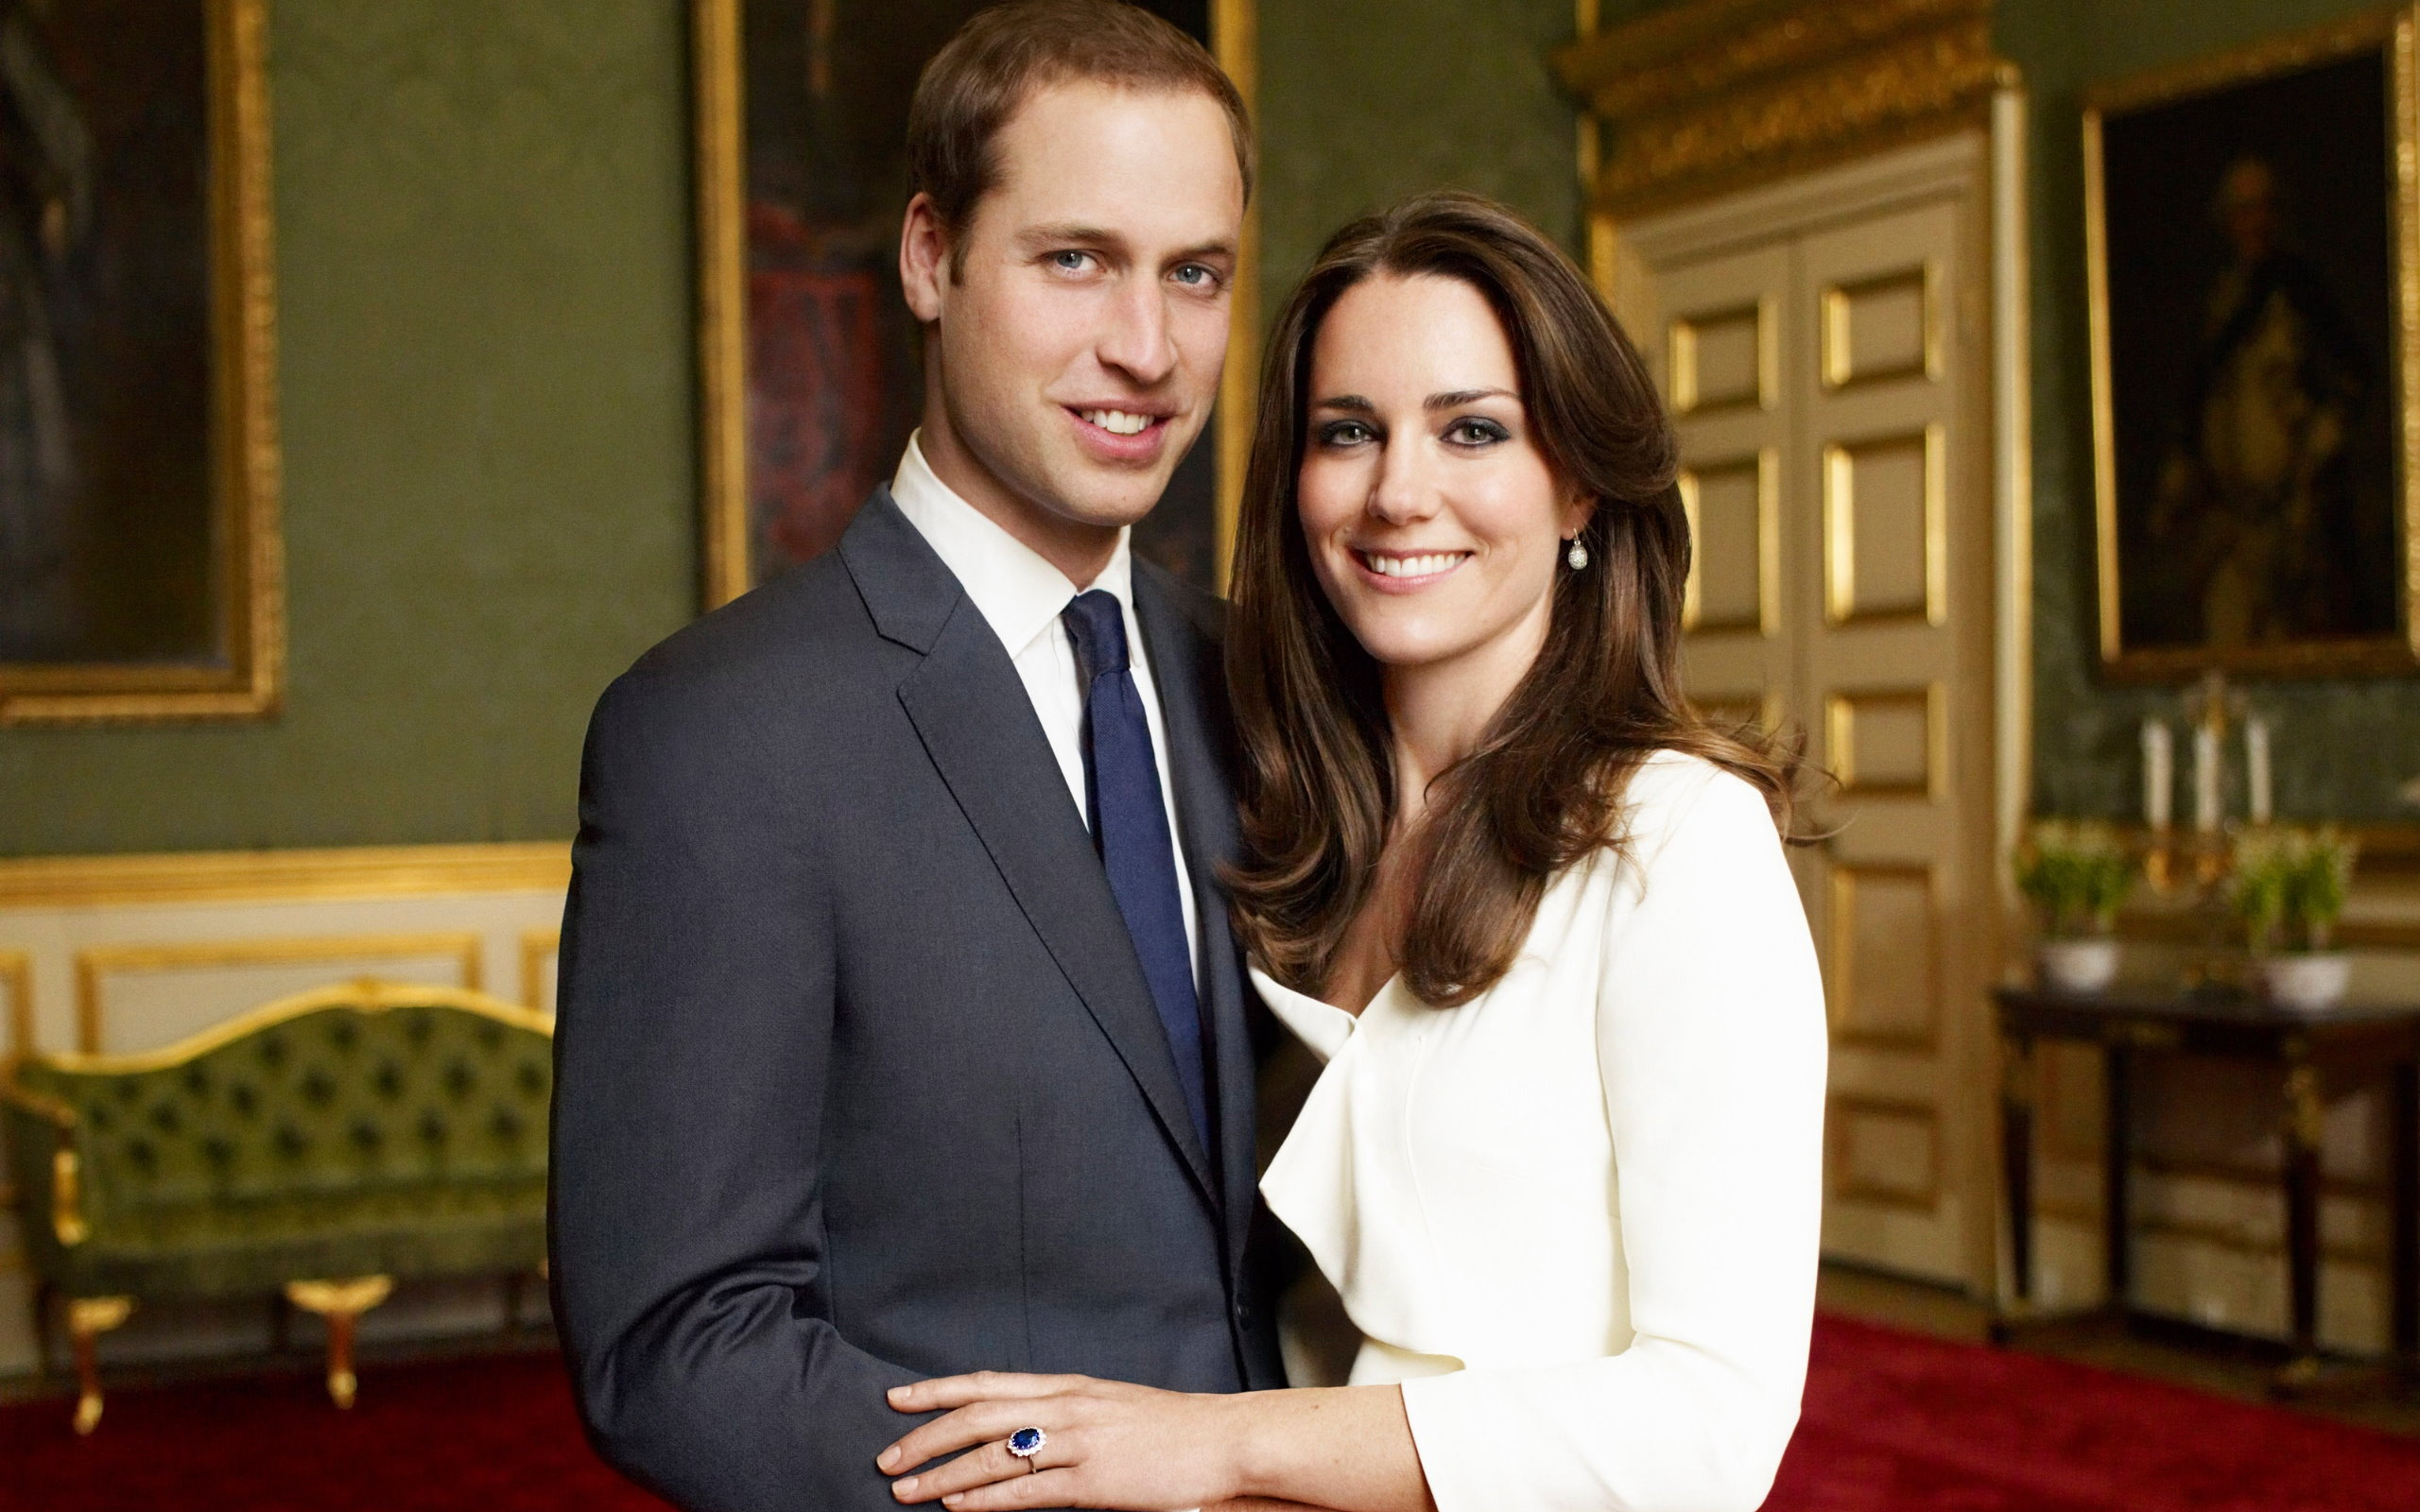 Prince-William-and-Kate-Middleton-Wallpaper